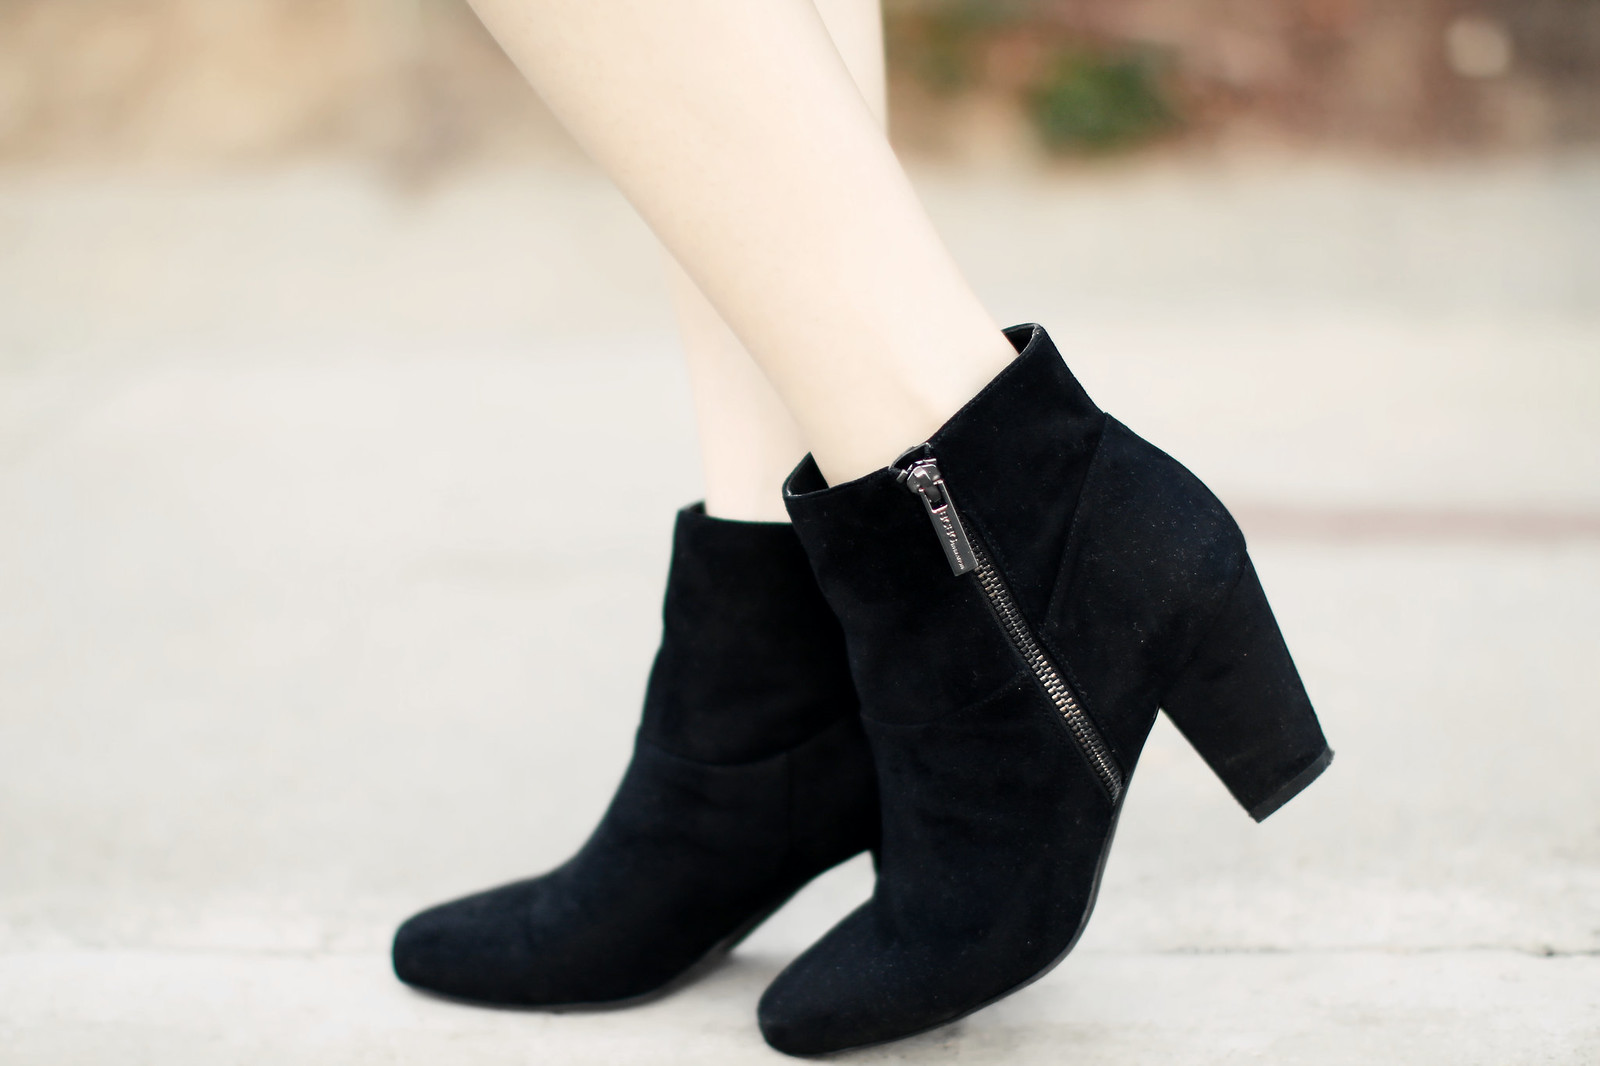 1140-bcbgeneration-black-suede-ankle-booties-fall2016